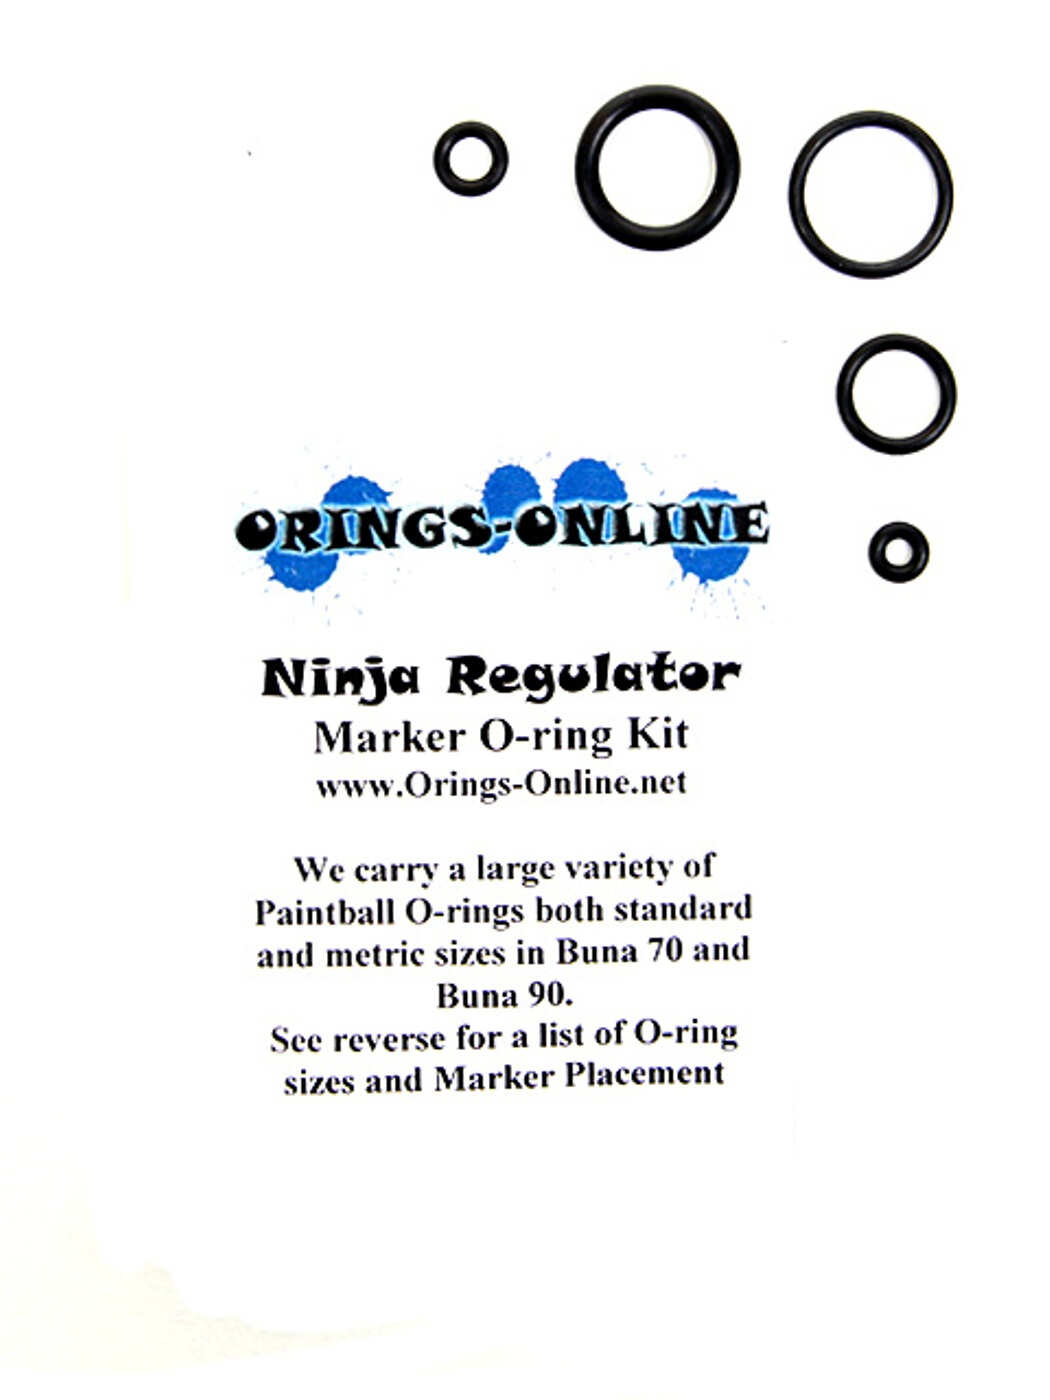 Ninja Regulator O-ring Kit